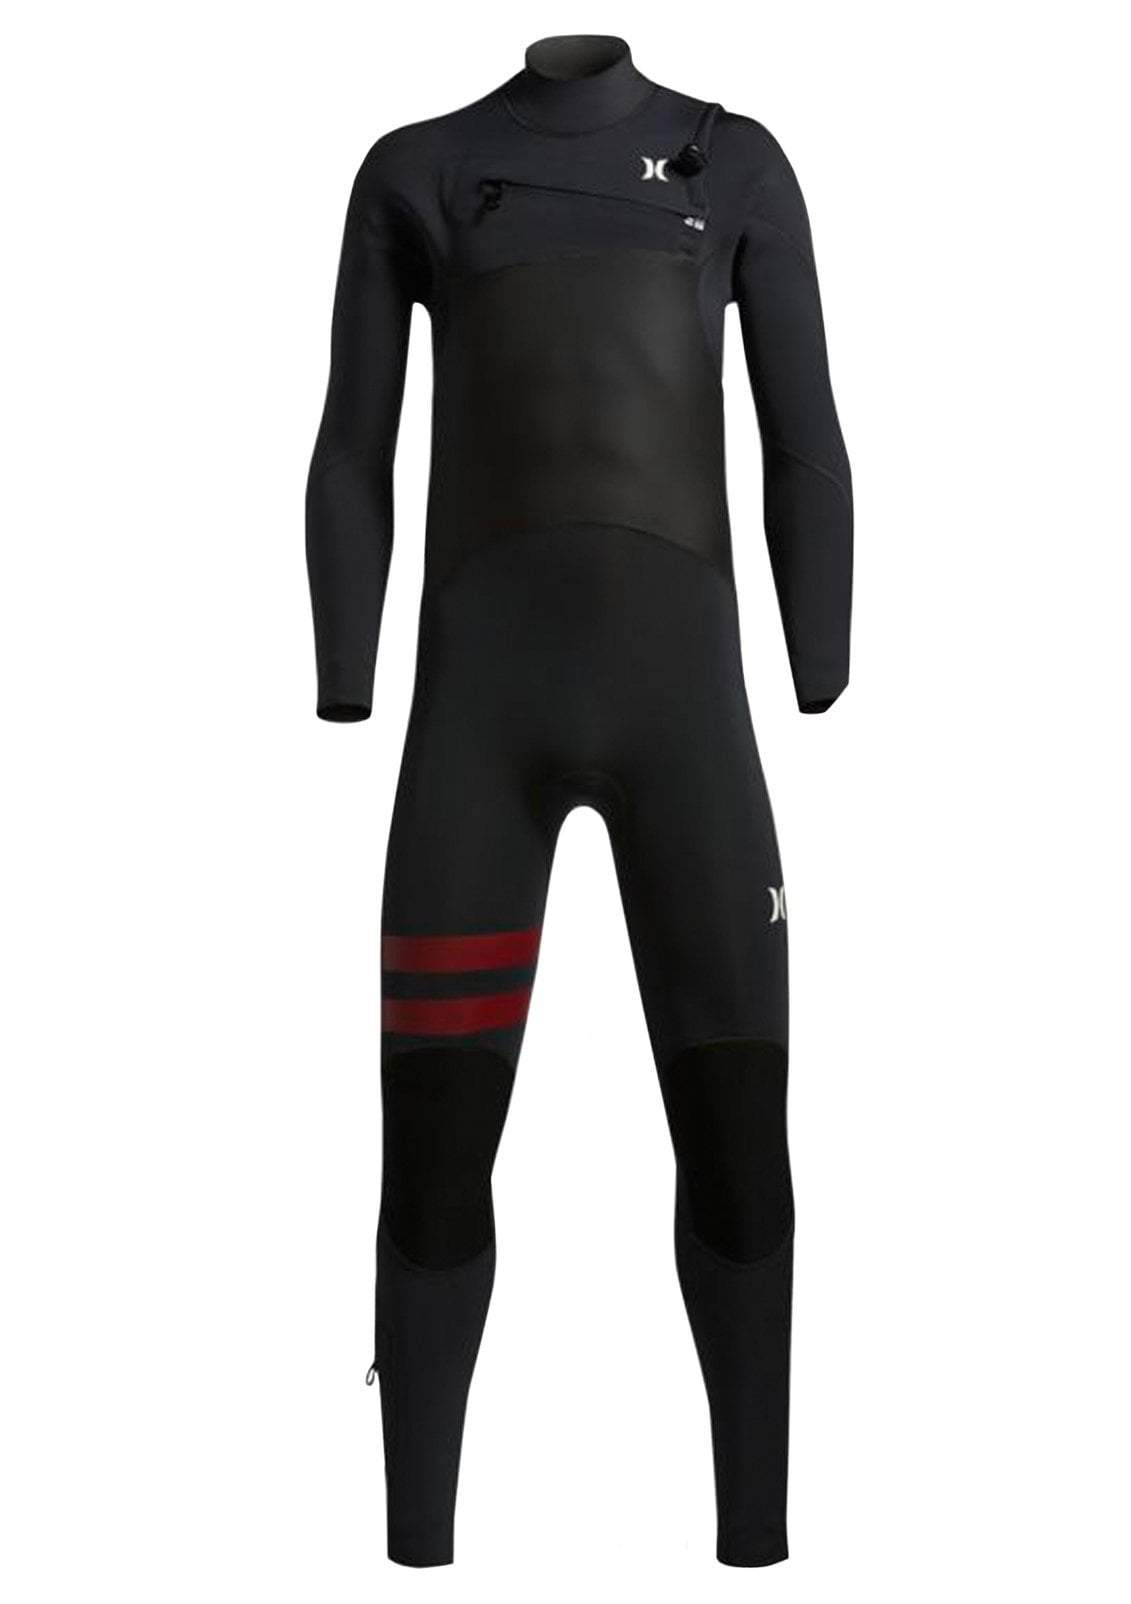 Hurley Boys Advantage Plus 3/2 Wetsuit